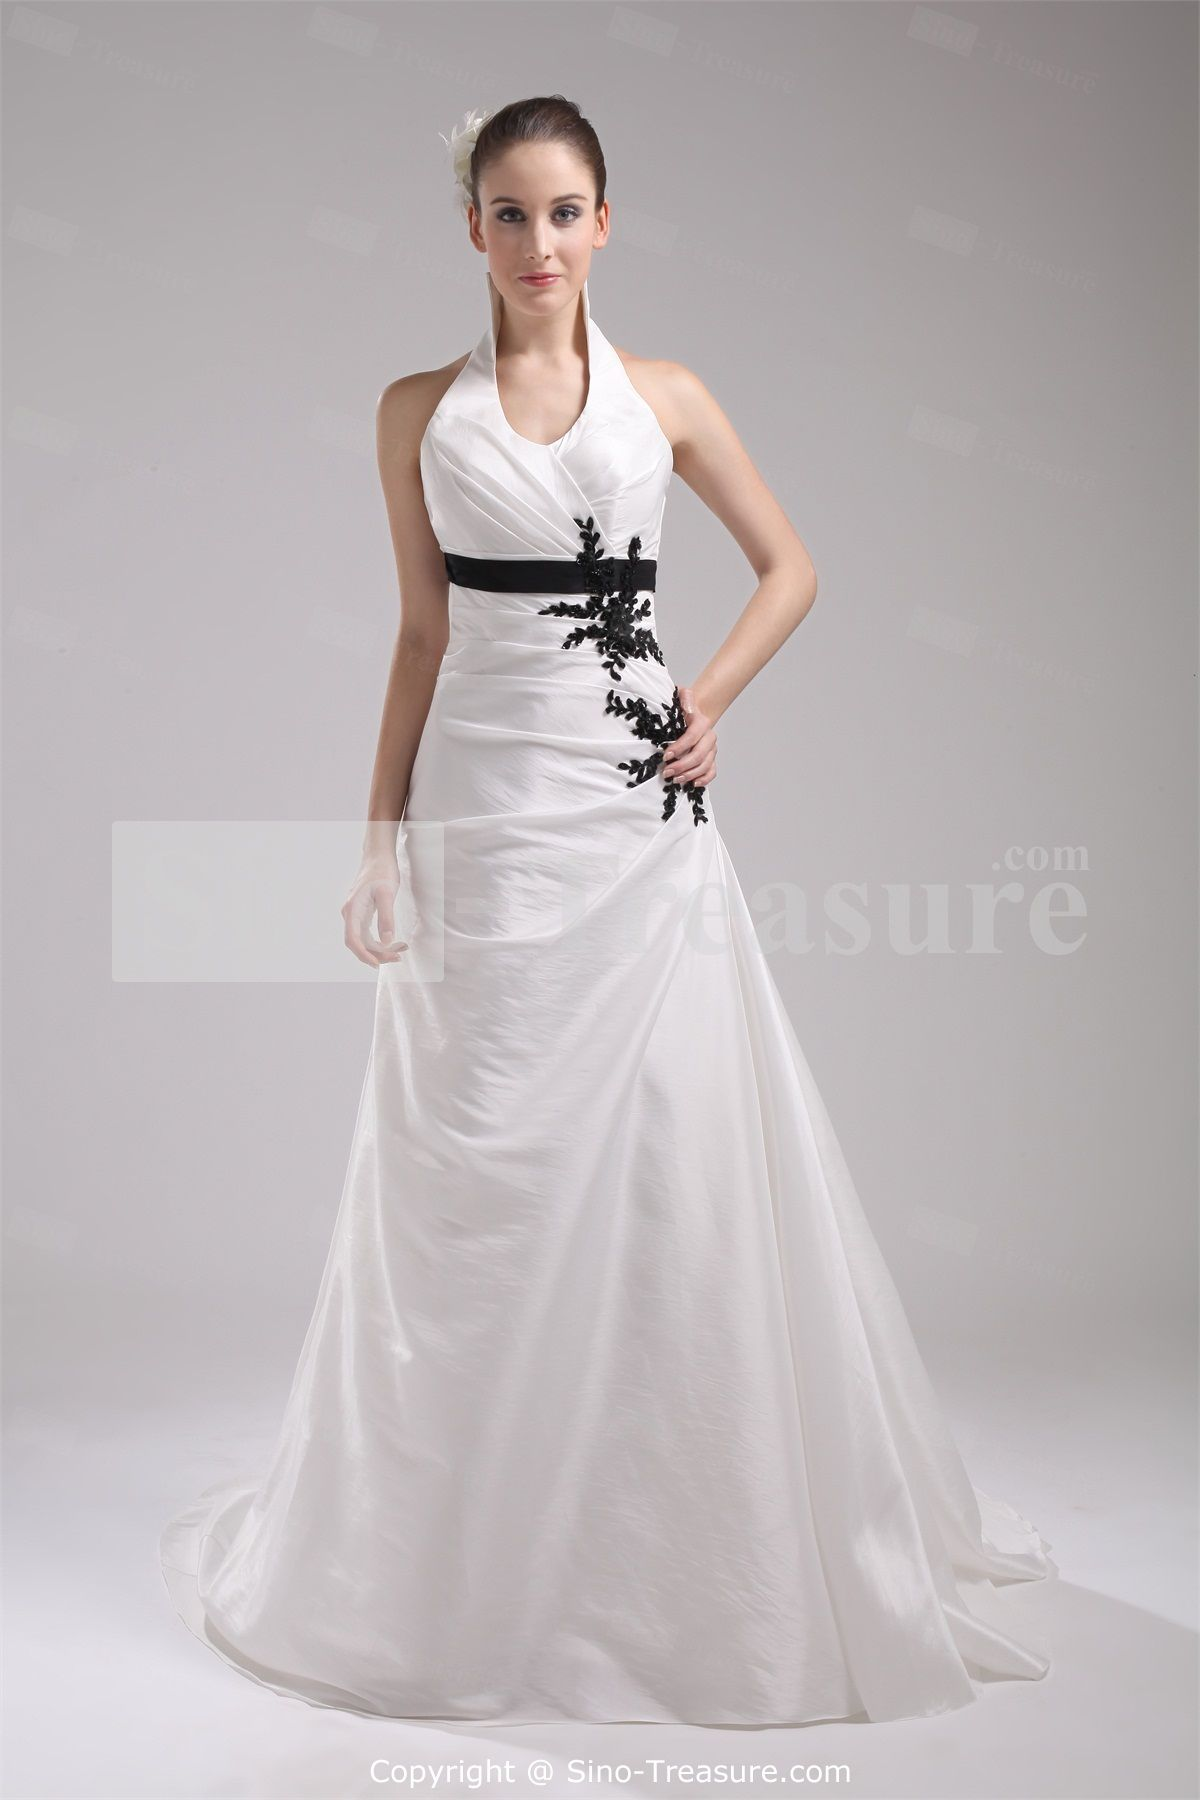 Wedding dress with different color train